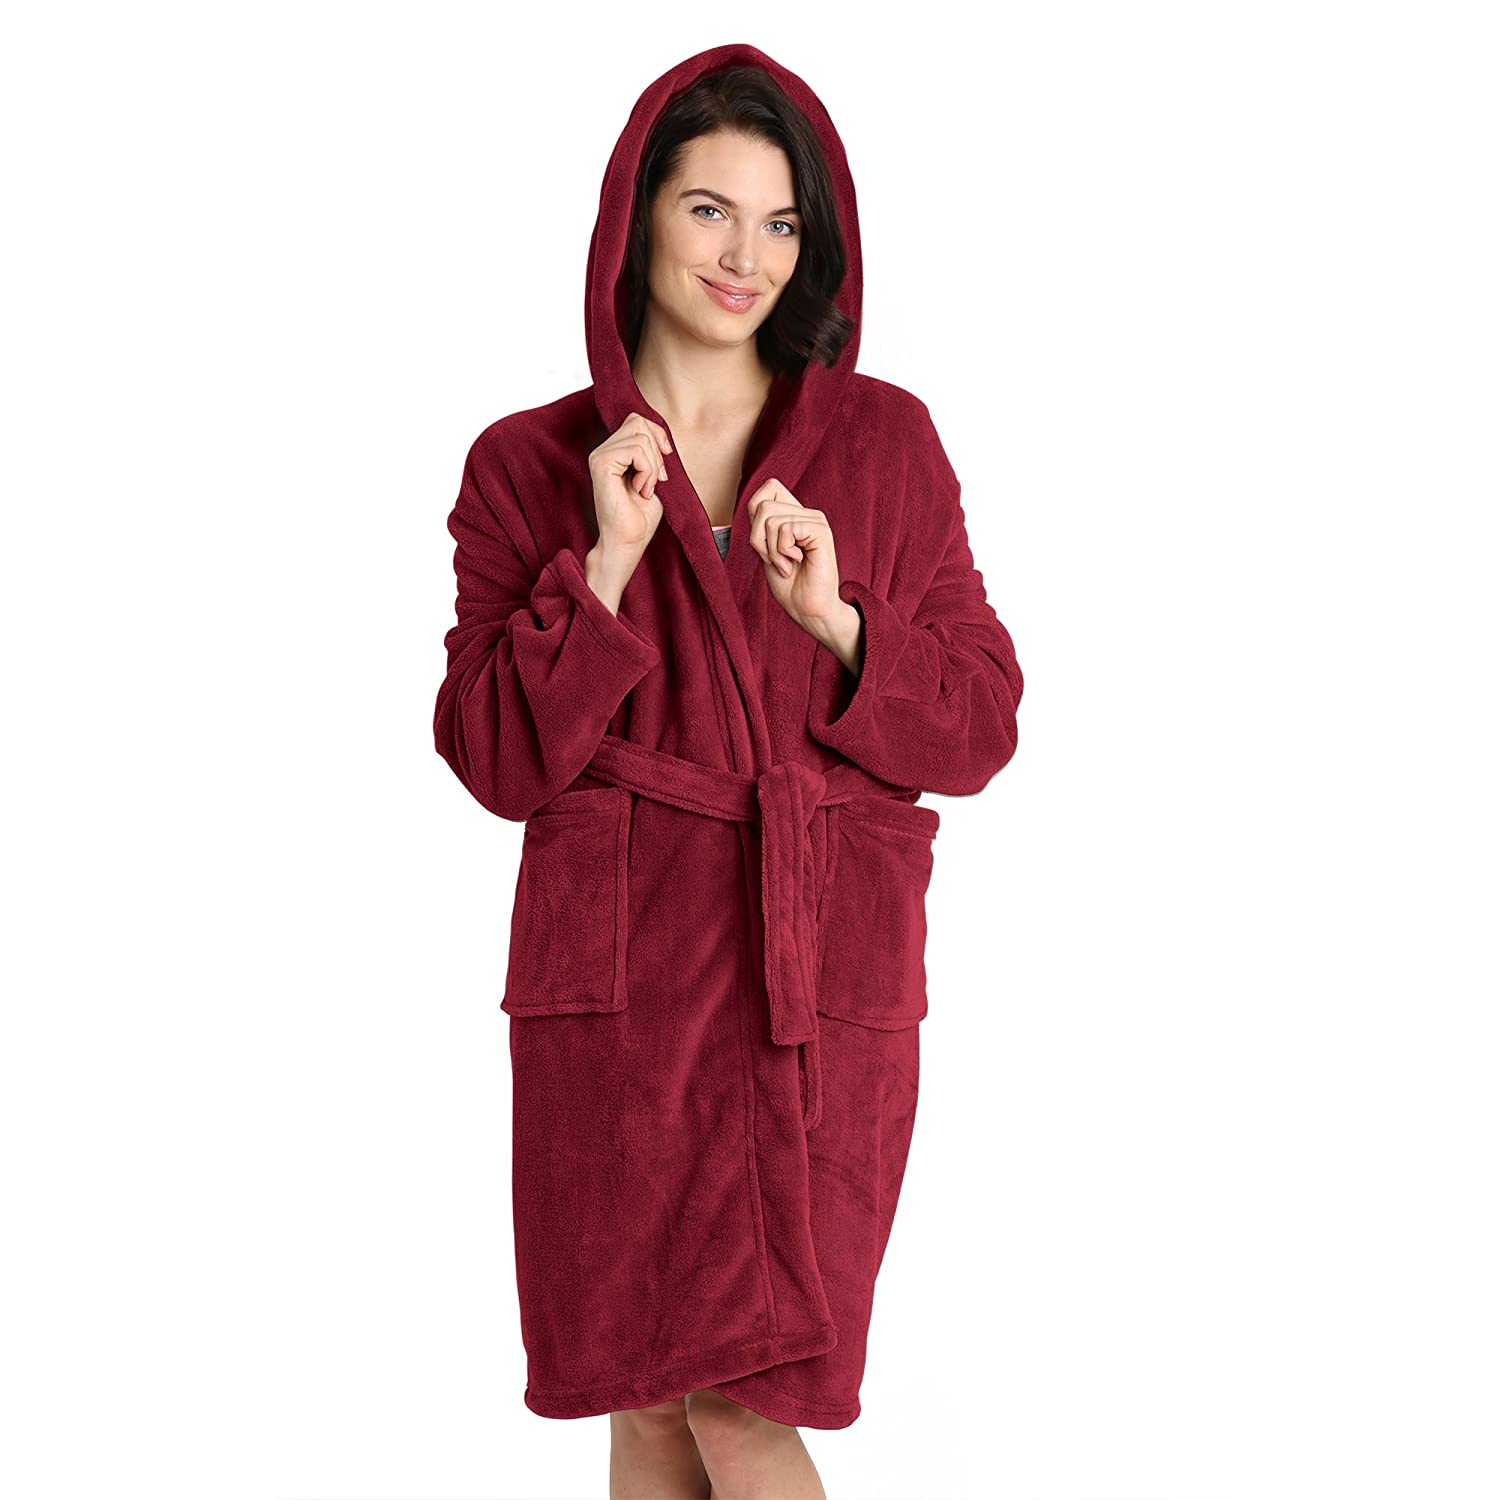 7370b4e24d Pembrook Ladies Robe with Hood - Plush Fleece - Kimono Wrap - Spa Bathrobe  Women